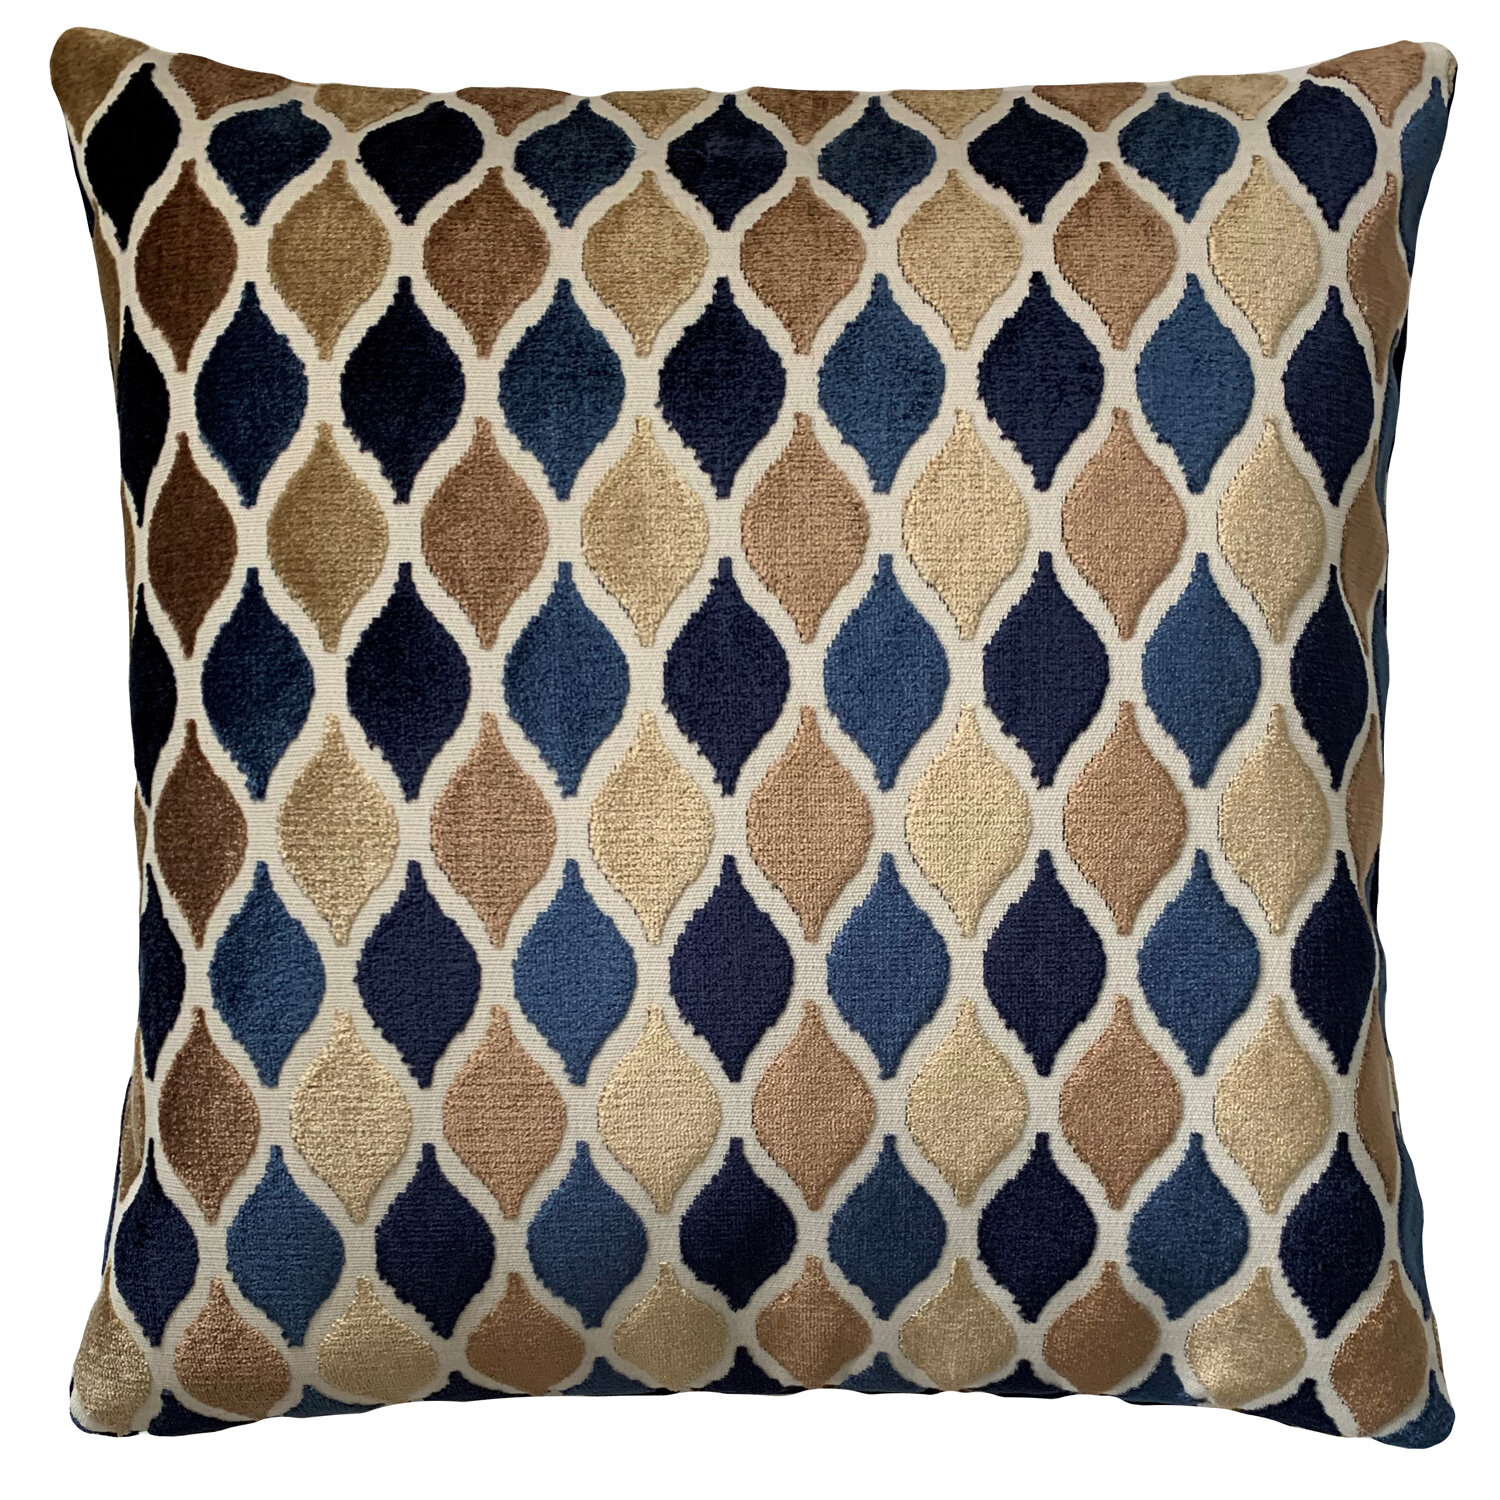 Corrigan Studio Hockett Square Pillow Cover And Insert Reviews Wayfair